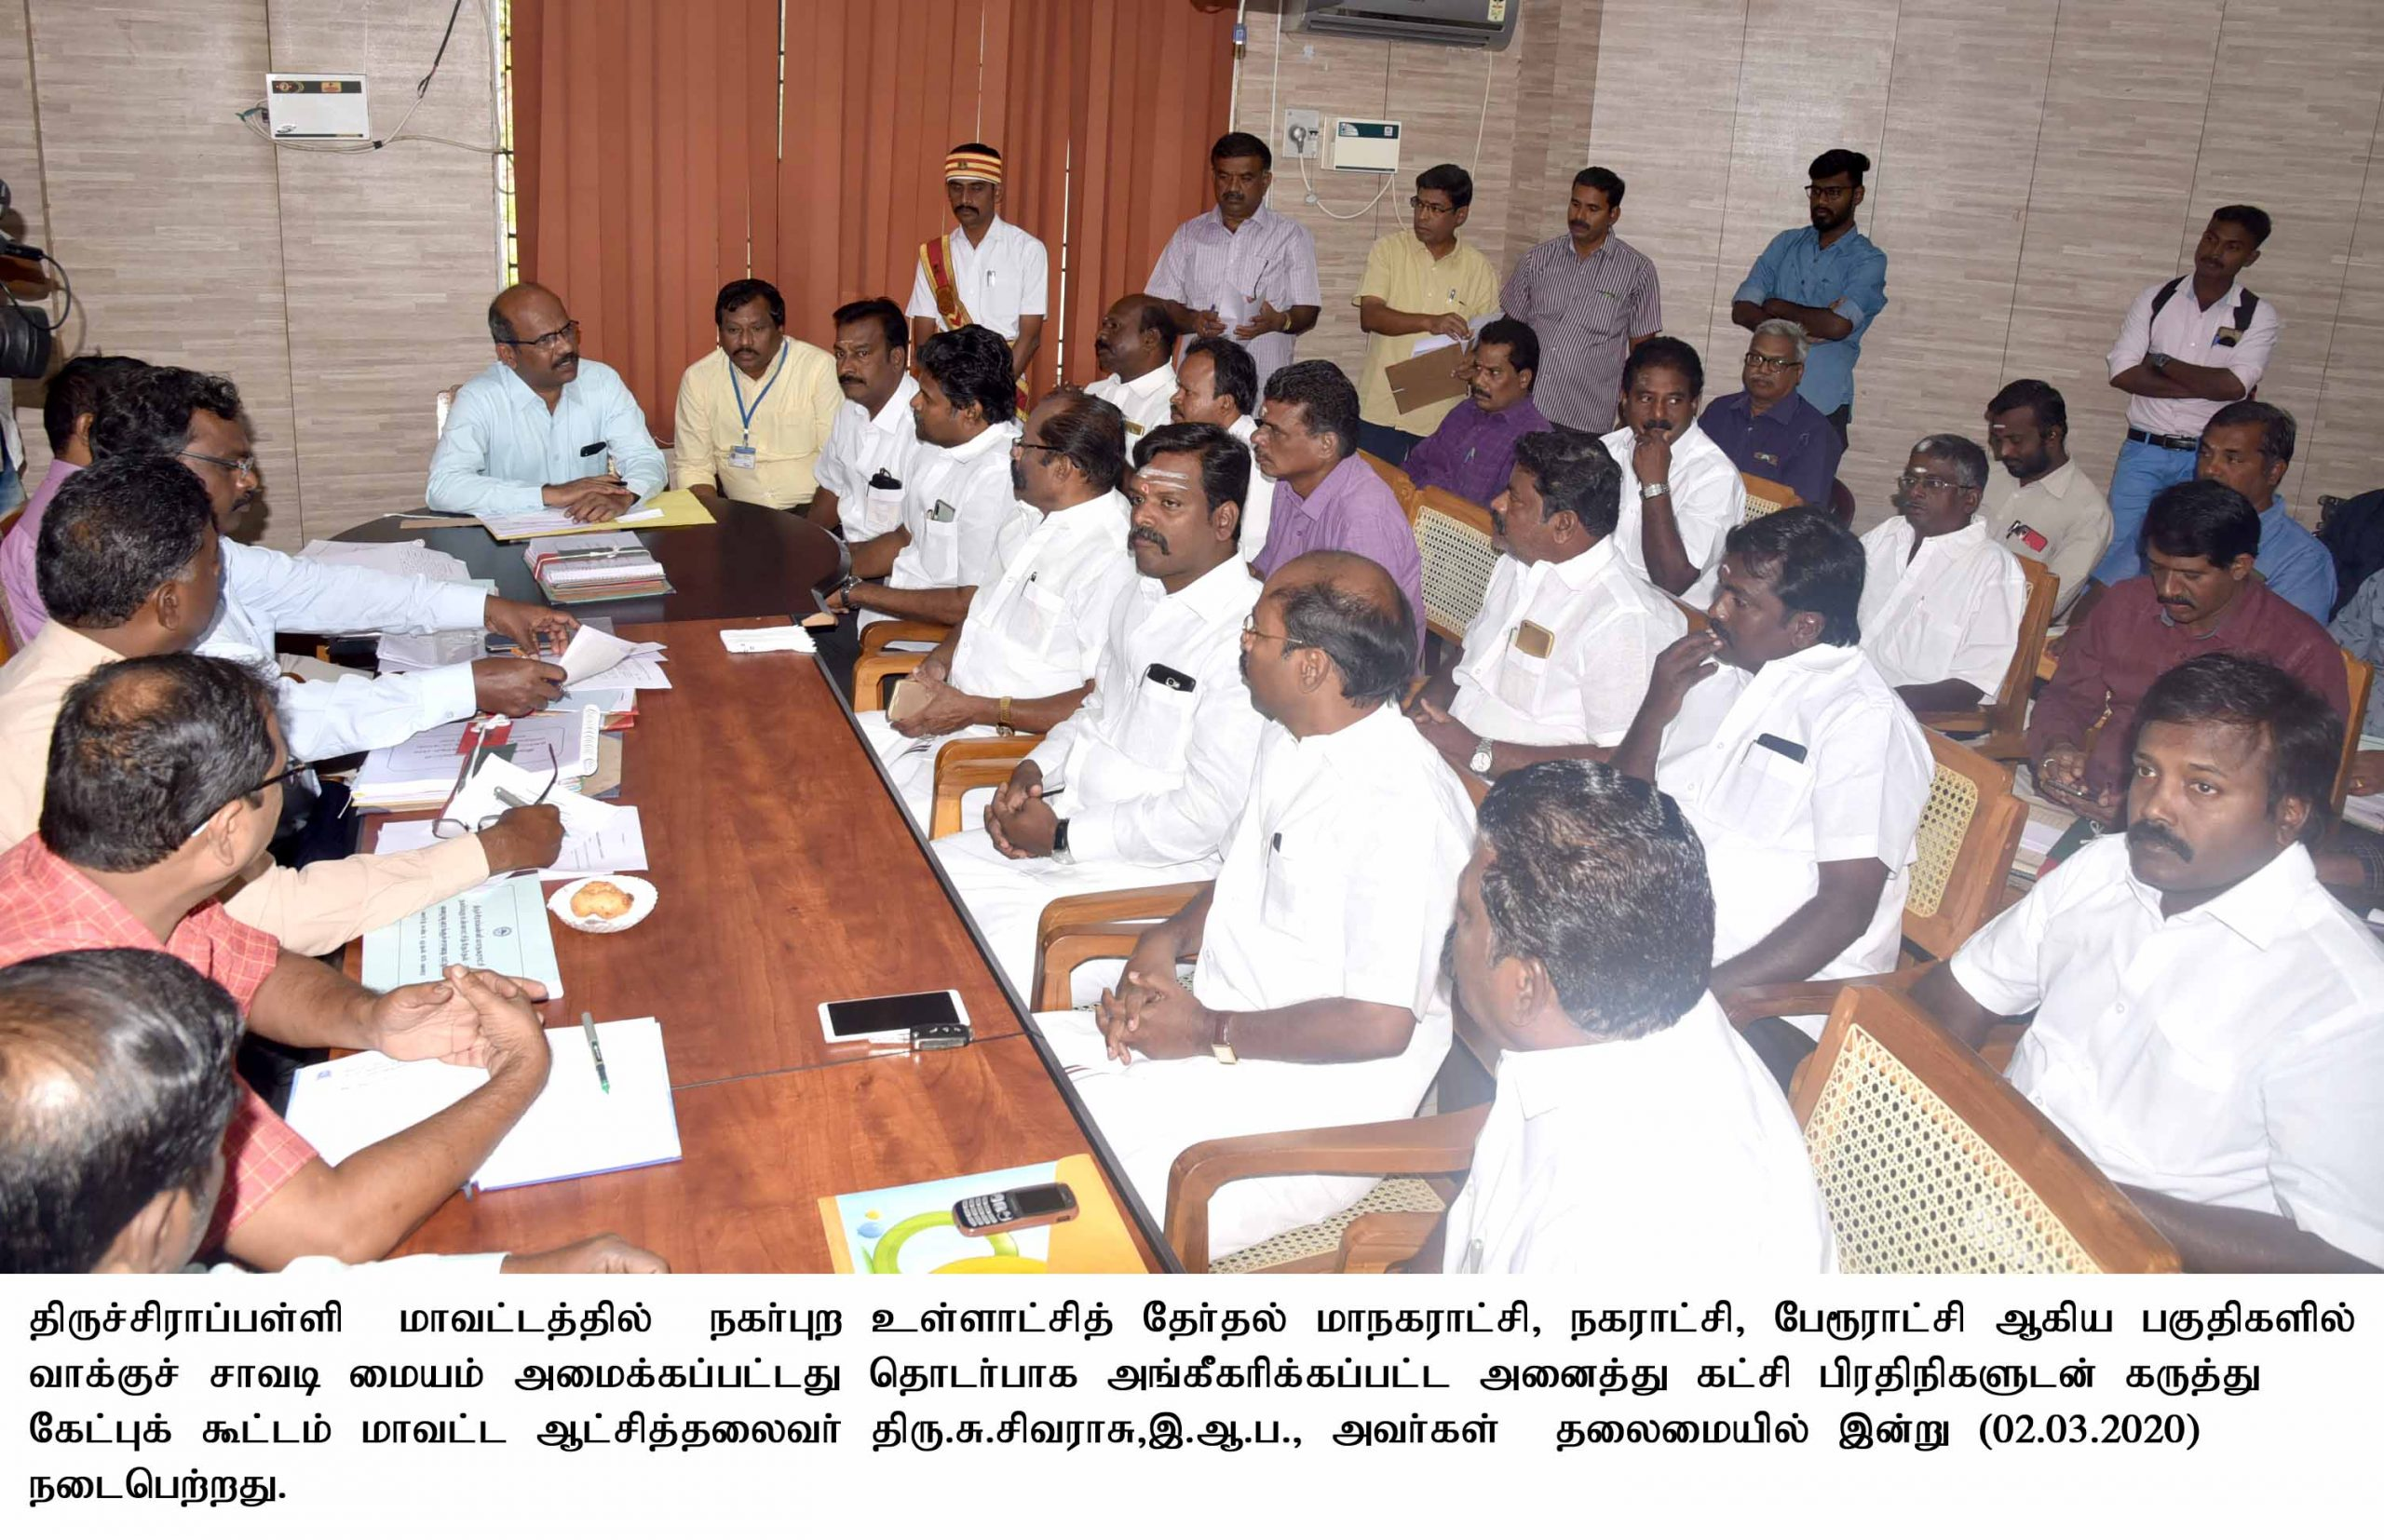 District Collector Conducted meeting with recognized Political Party regarding URBAN Local Body Elections 2020